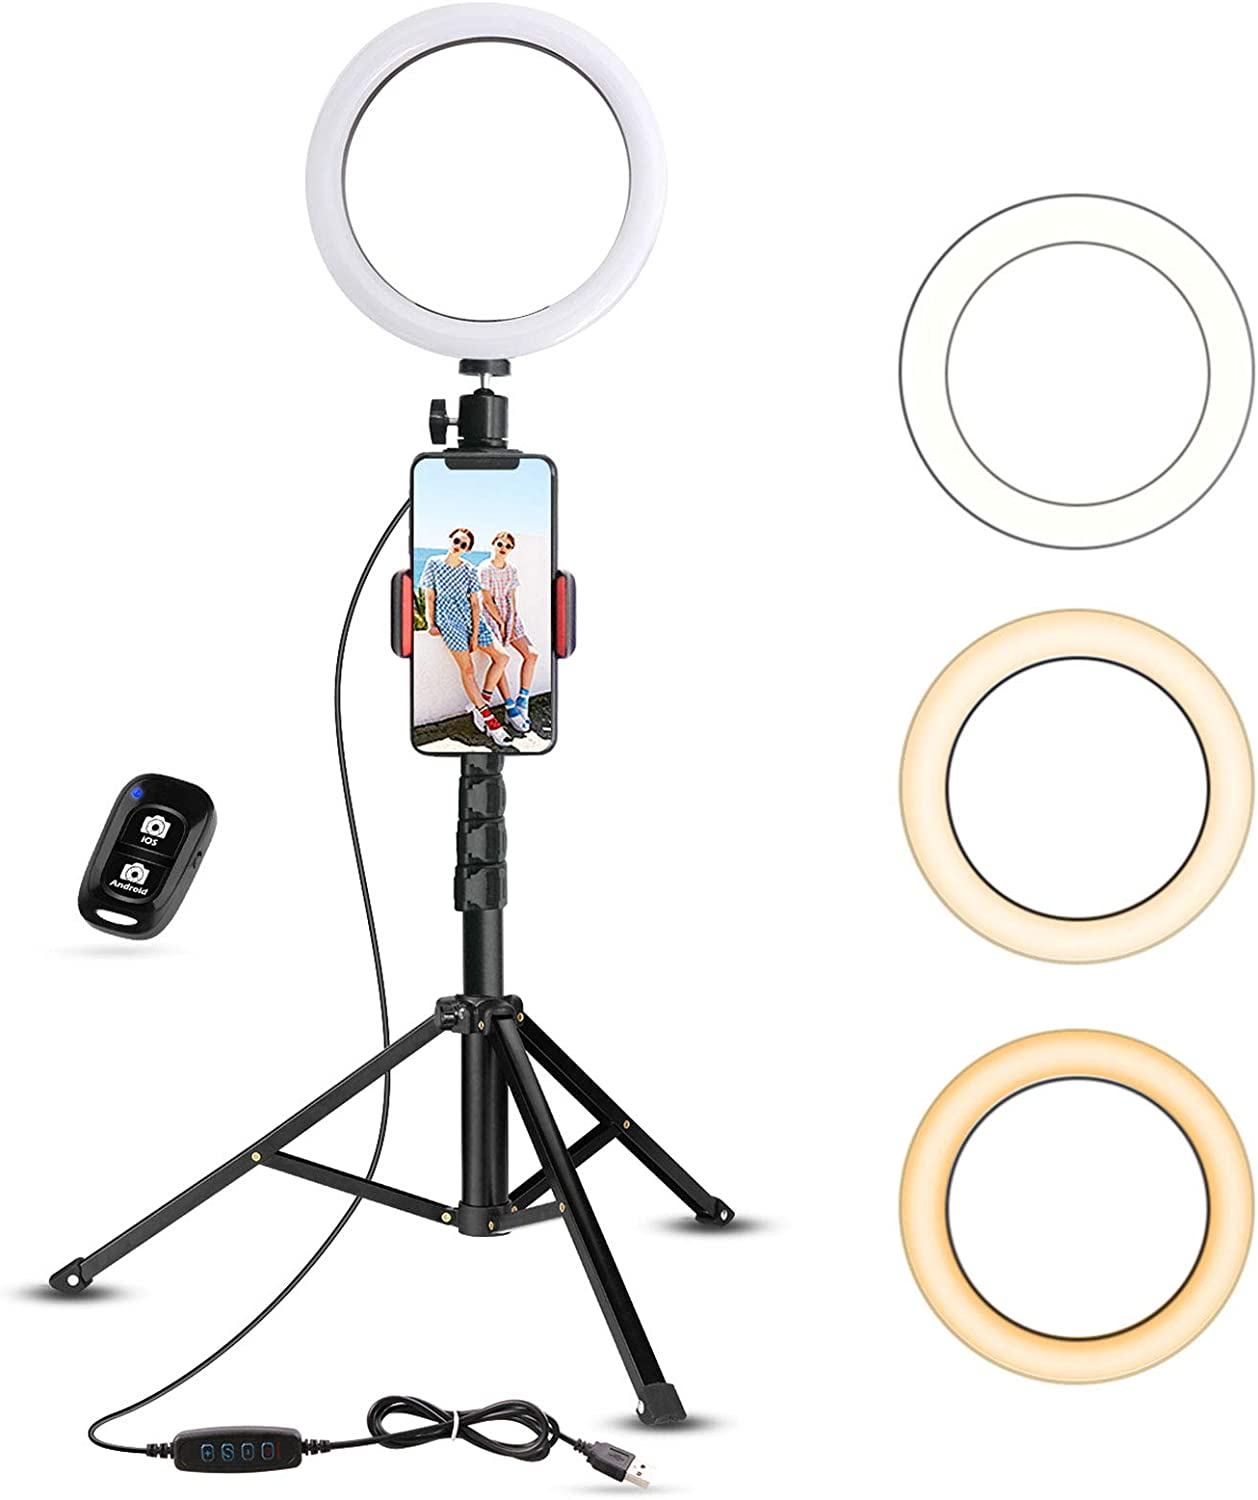 Photography Compatible with iPhone /& Android YouTube Video 15 Colors RGB Flash Dimmable Circle Light with Remote for Makeup 10/'/' RGB Selfie Ring Light with Tripod Stand /& Phone Holder